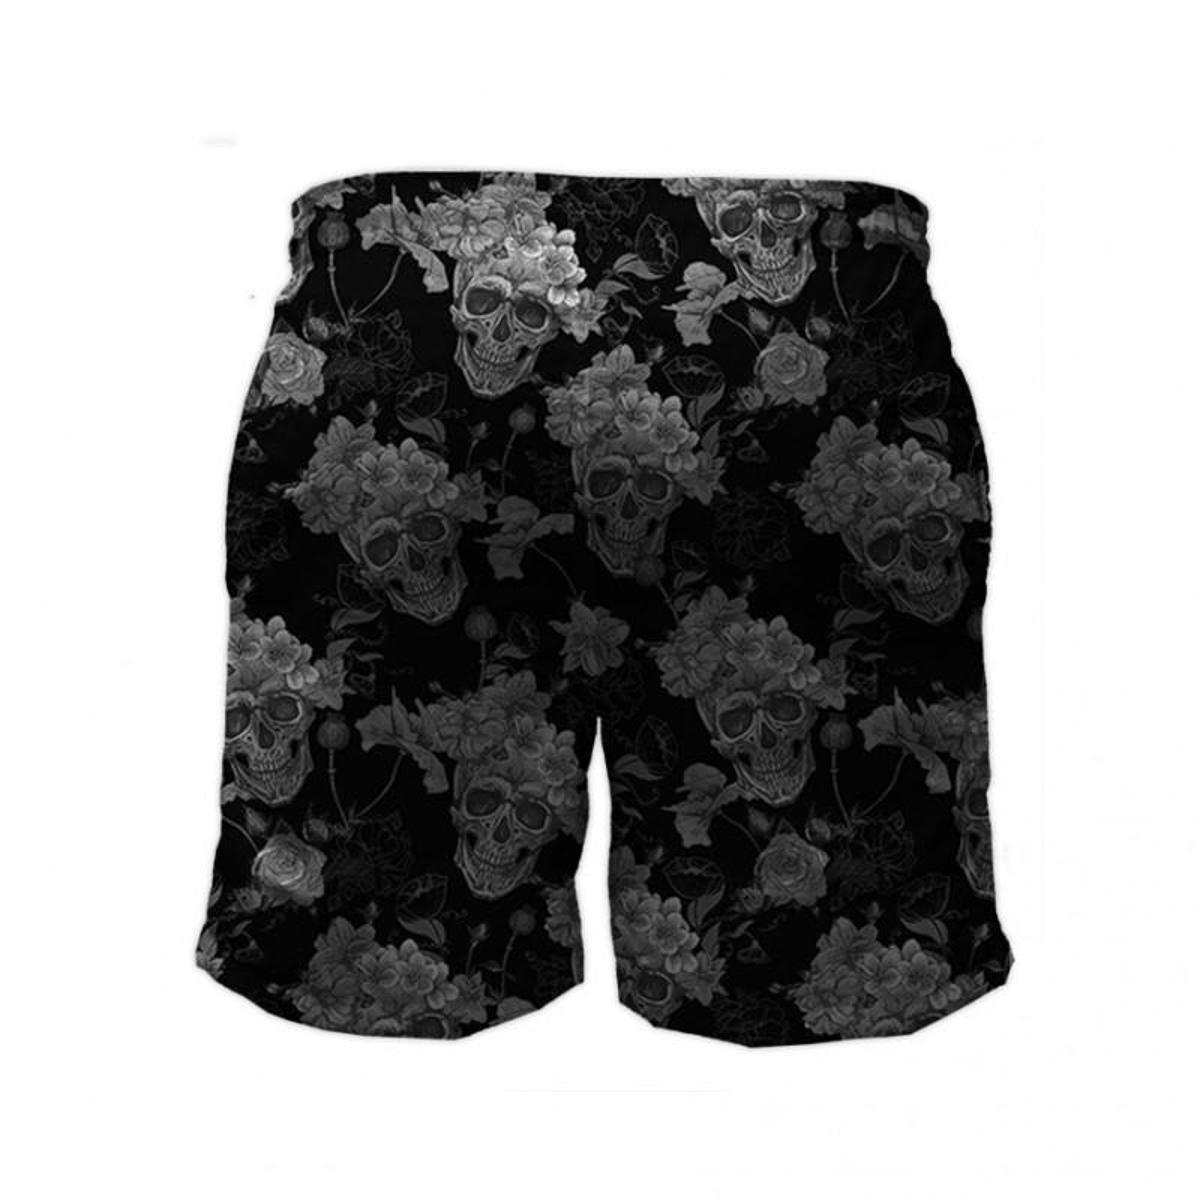 Short Tactel Maromba Fight Wear Skull Black Com Bolsos Masculino - Preto